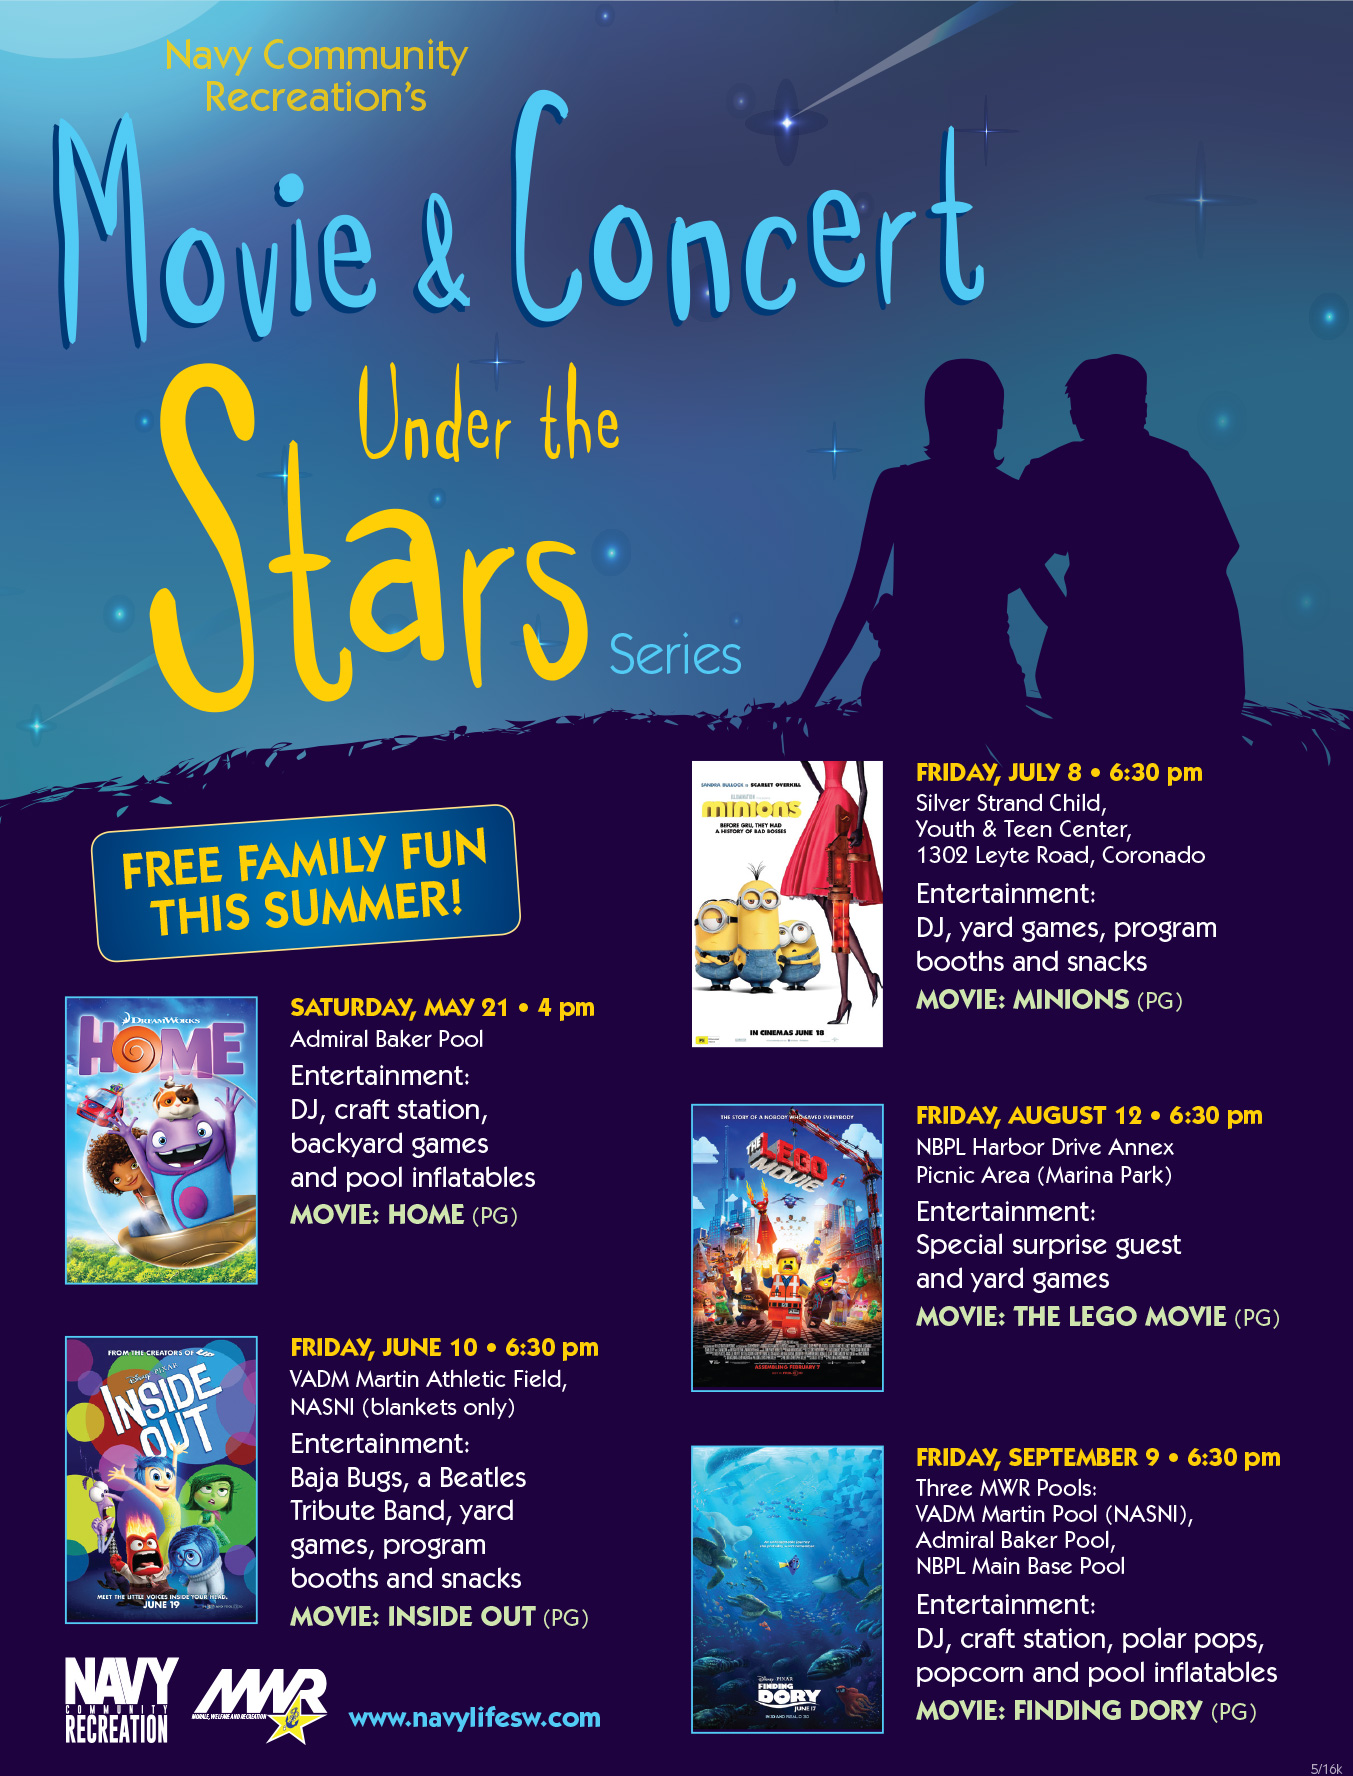 Movies-Under-the-Stars-Flyer 2016 - SDMFC